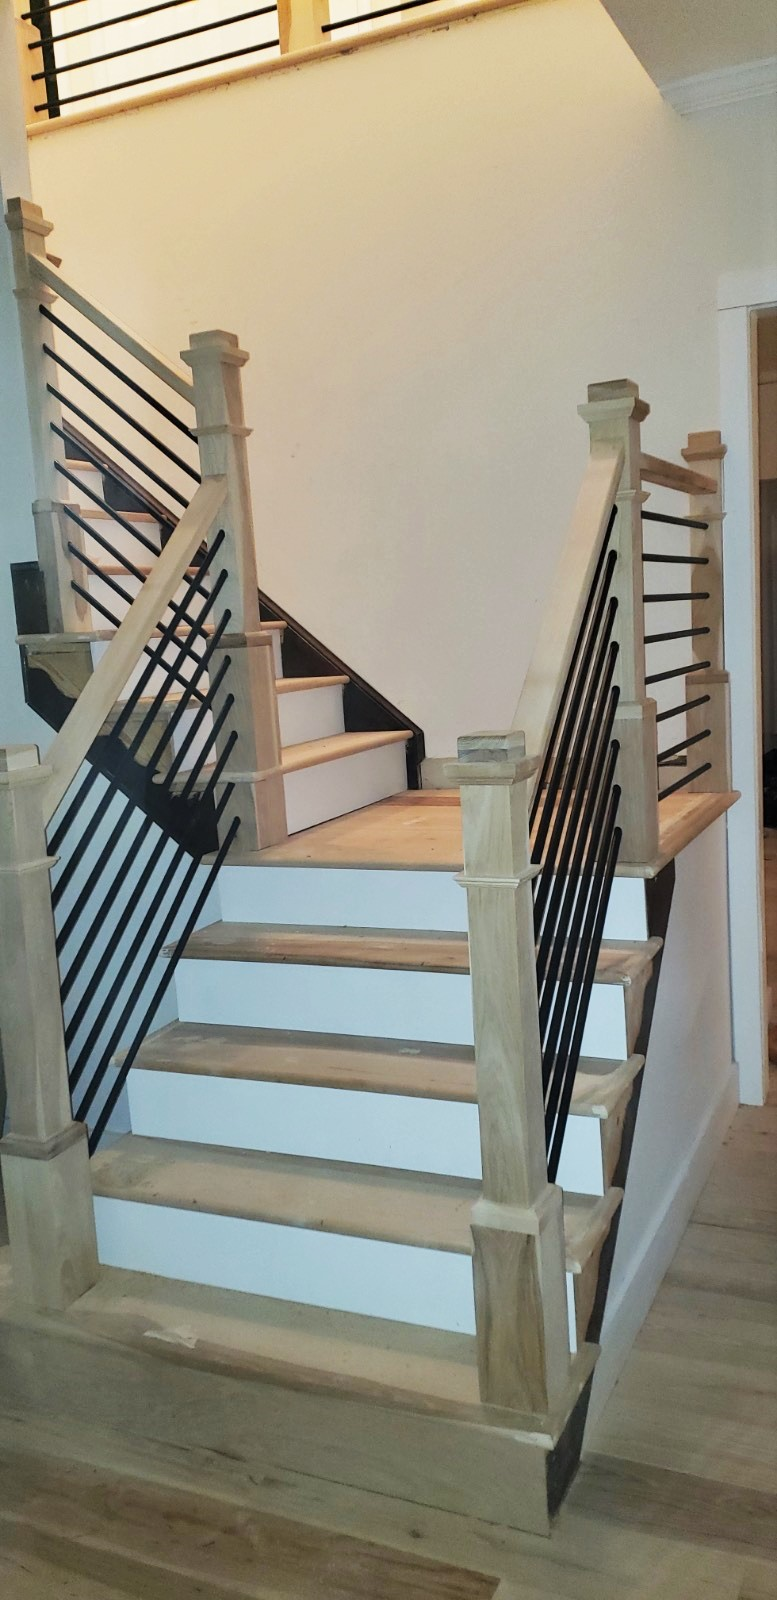 Natural Hickory Stairway with Metal Balusters